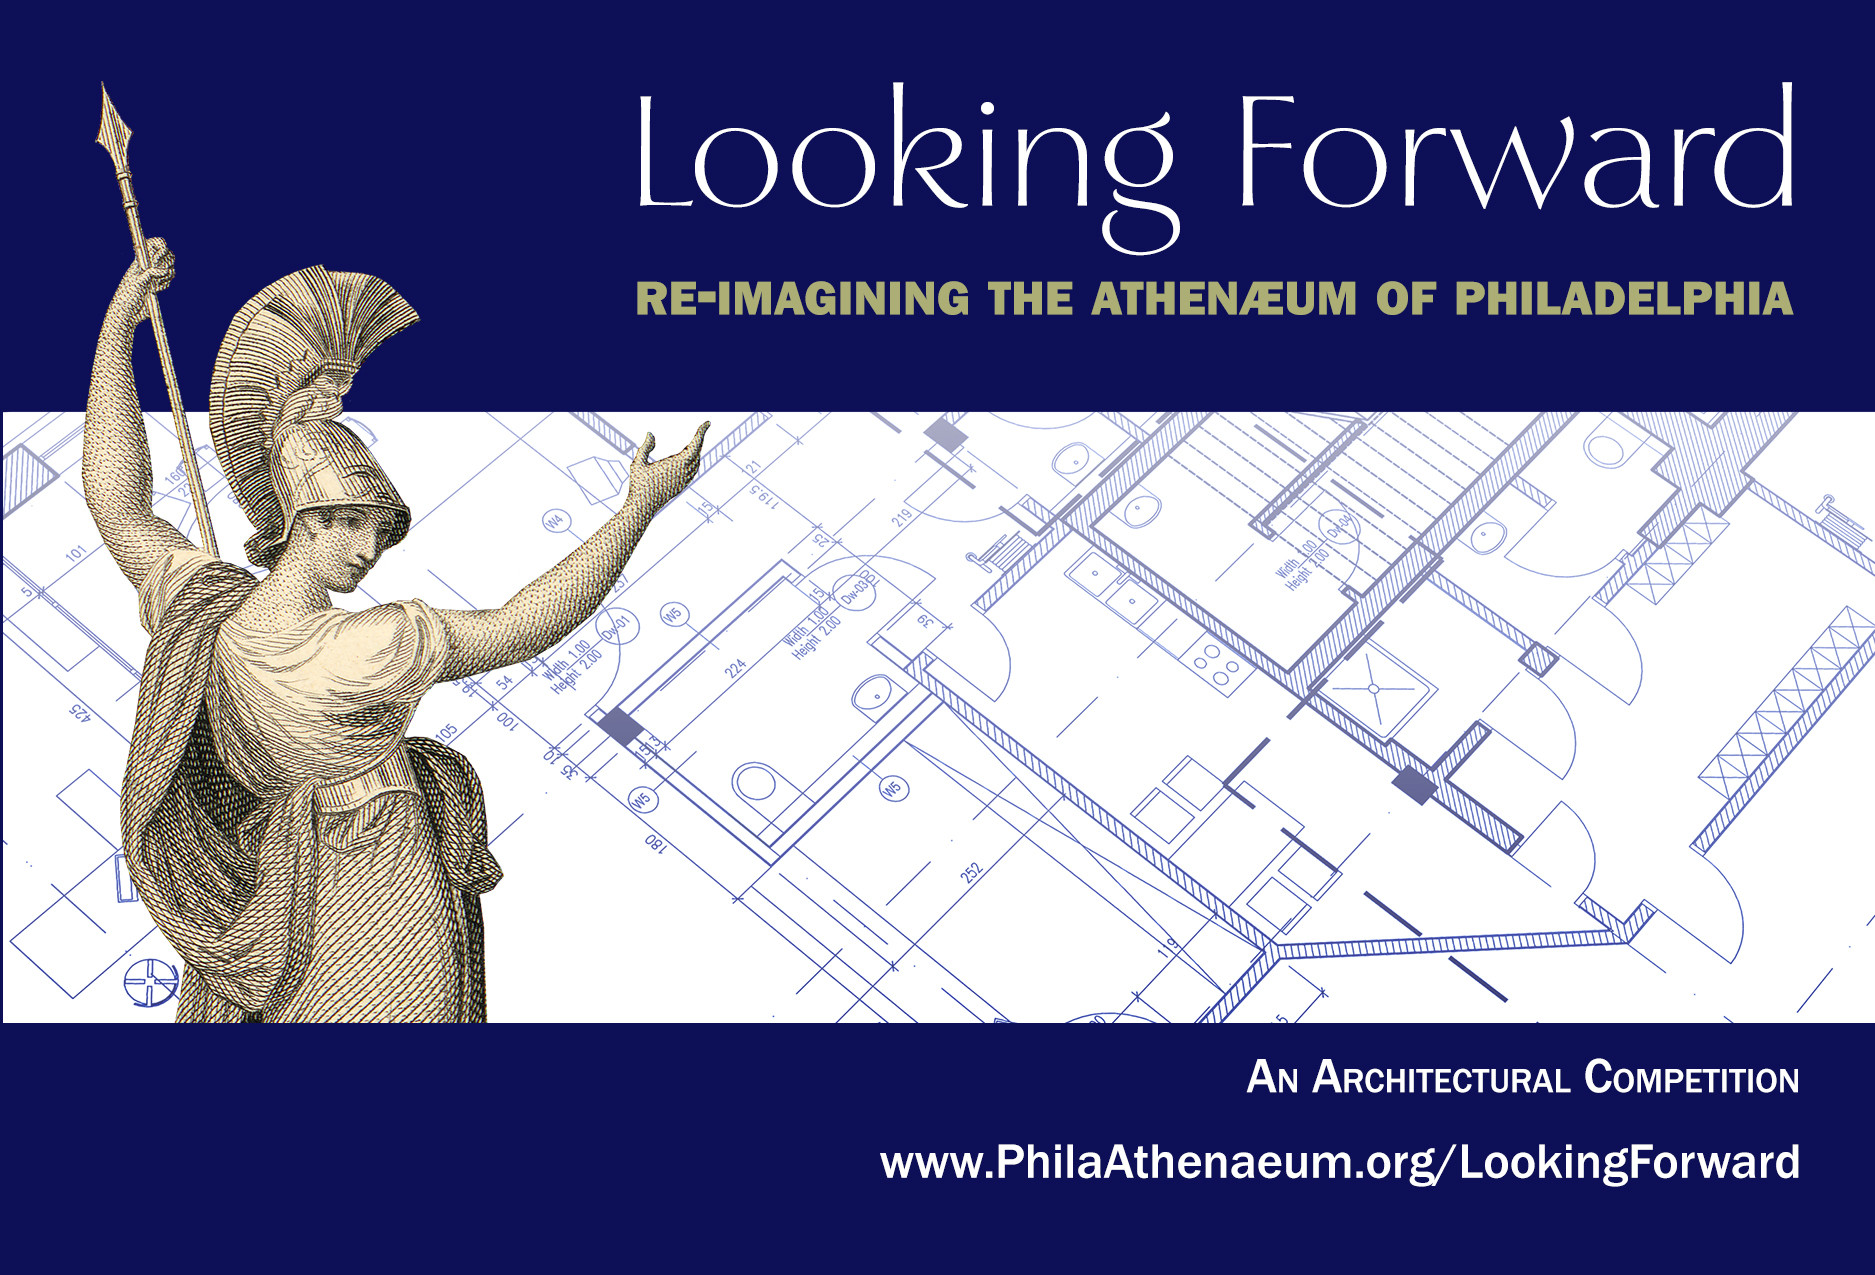 Competition: Re-Imagining The Athenaeum of Philadelphia